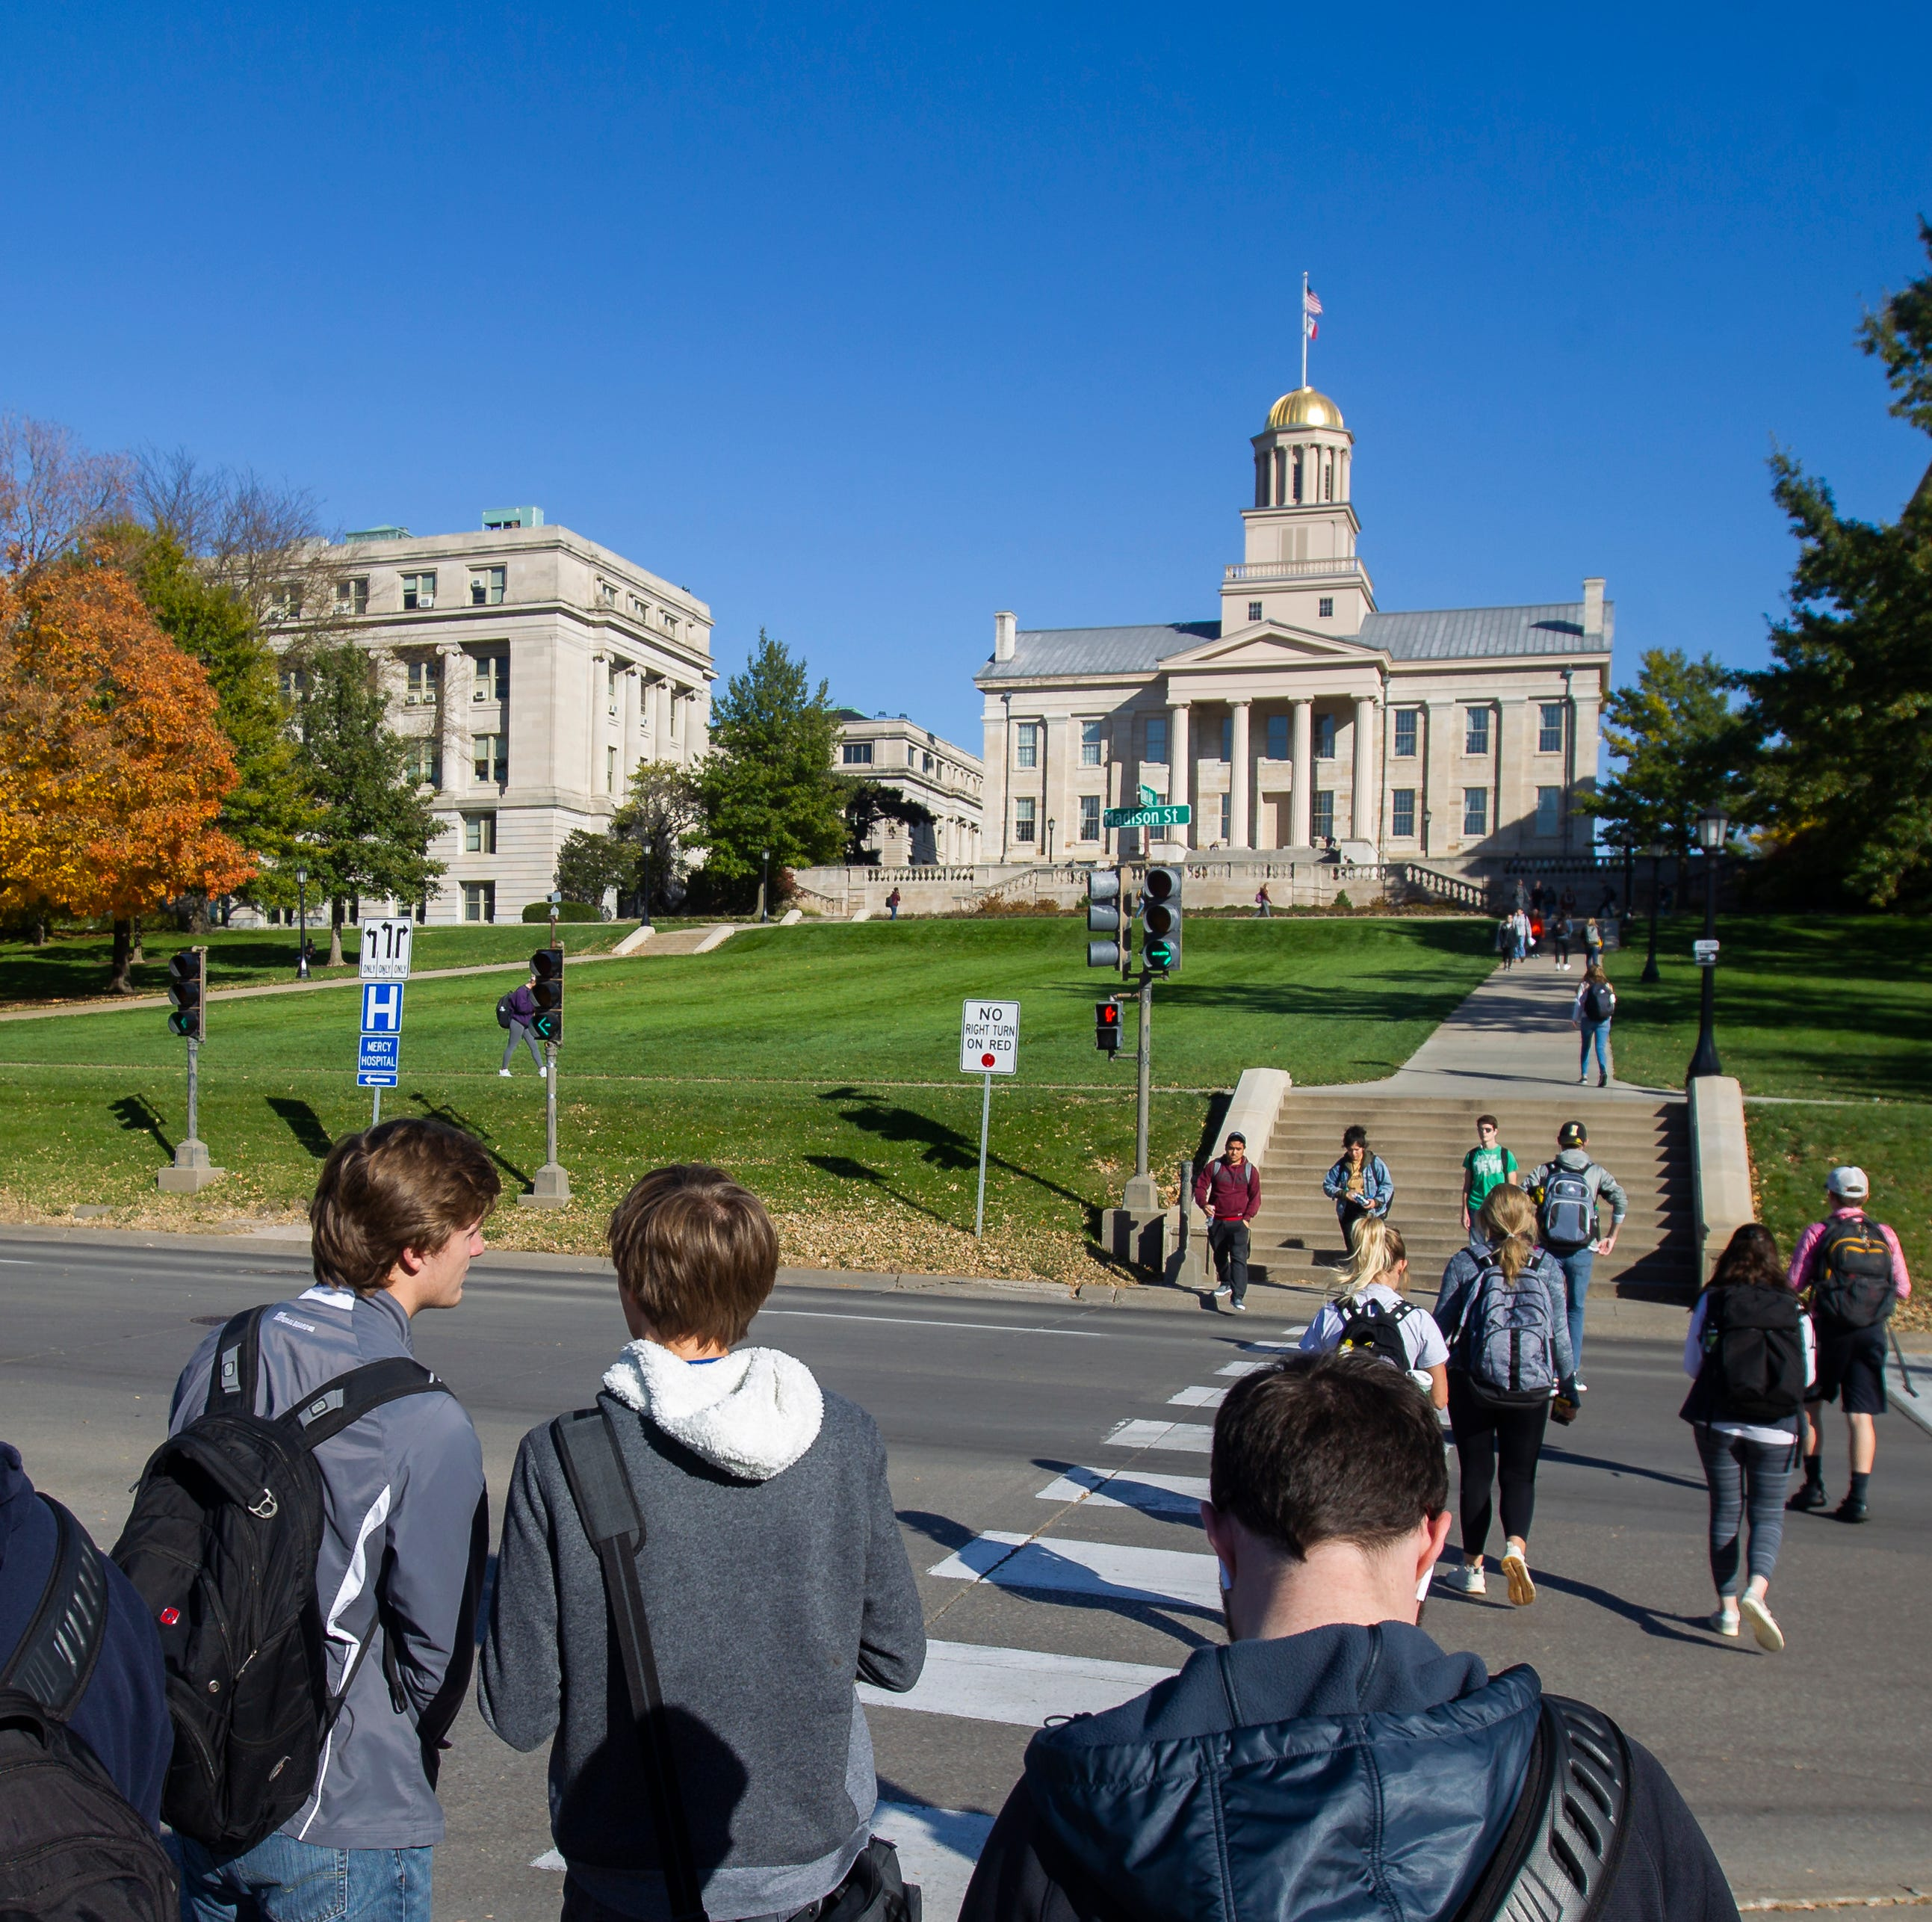 When it comes to bang for your buck, University of Iowa comes in fourth by this new ranking